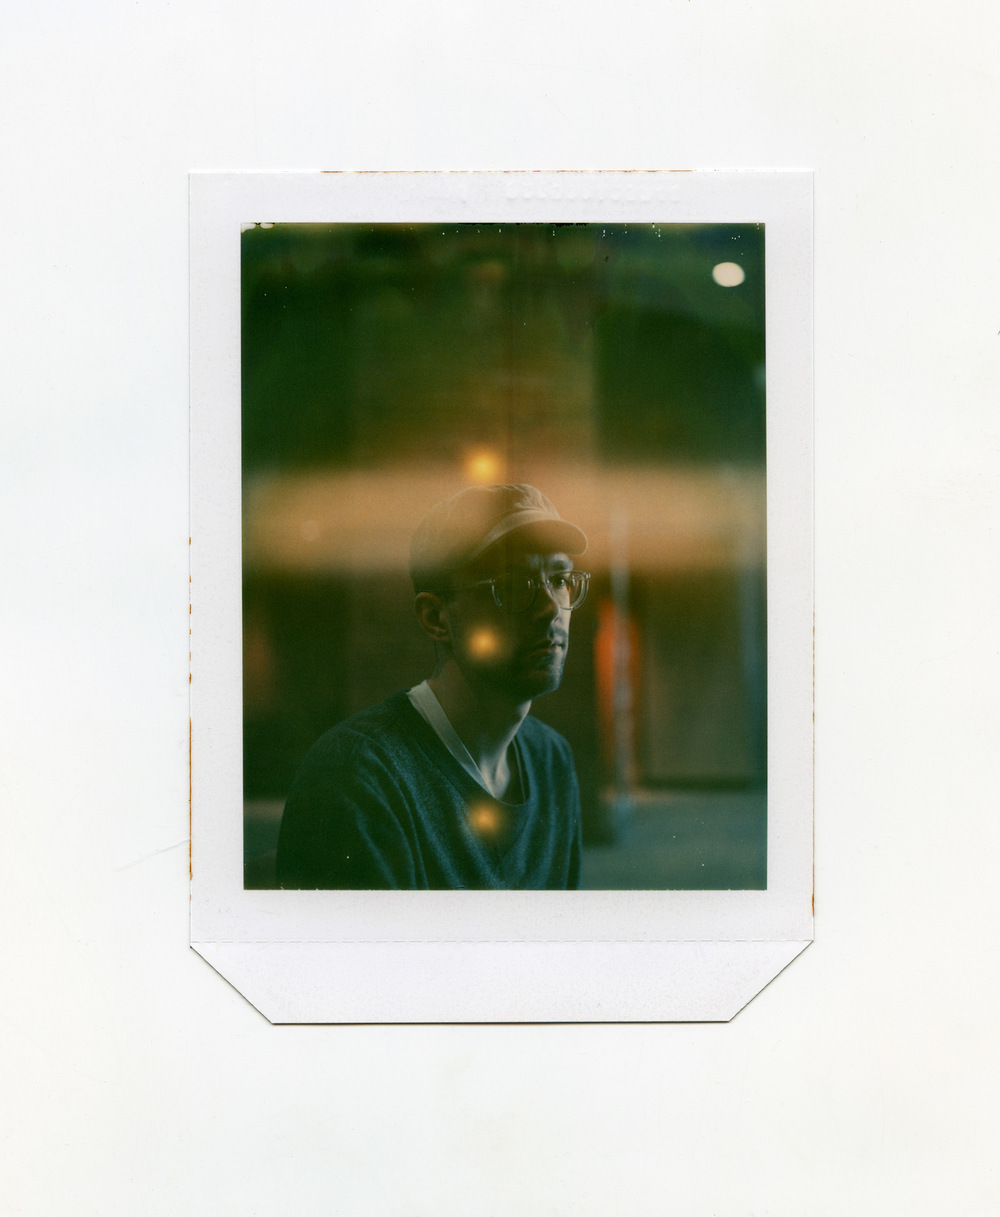 Brian Garbrecht - Ryan Expired Polaroid type 58 4x5 instant film. 2018